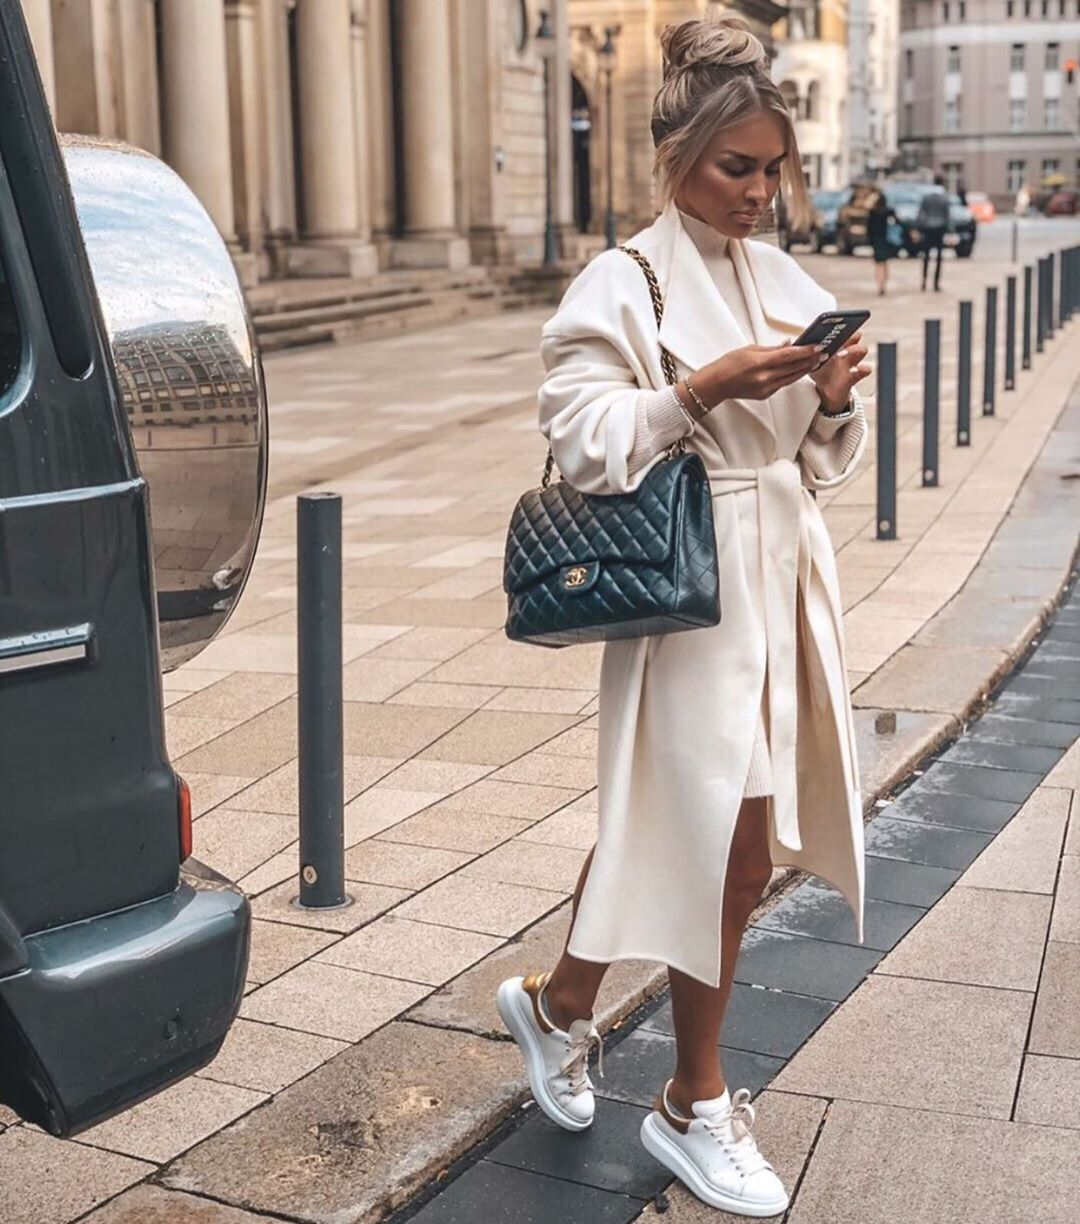 30 The Best Street Style Fashion Ideas Of The Year images 4